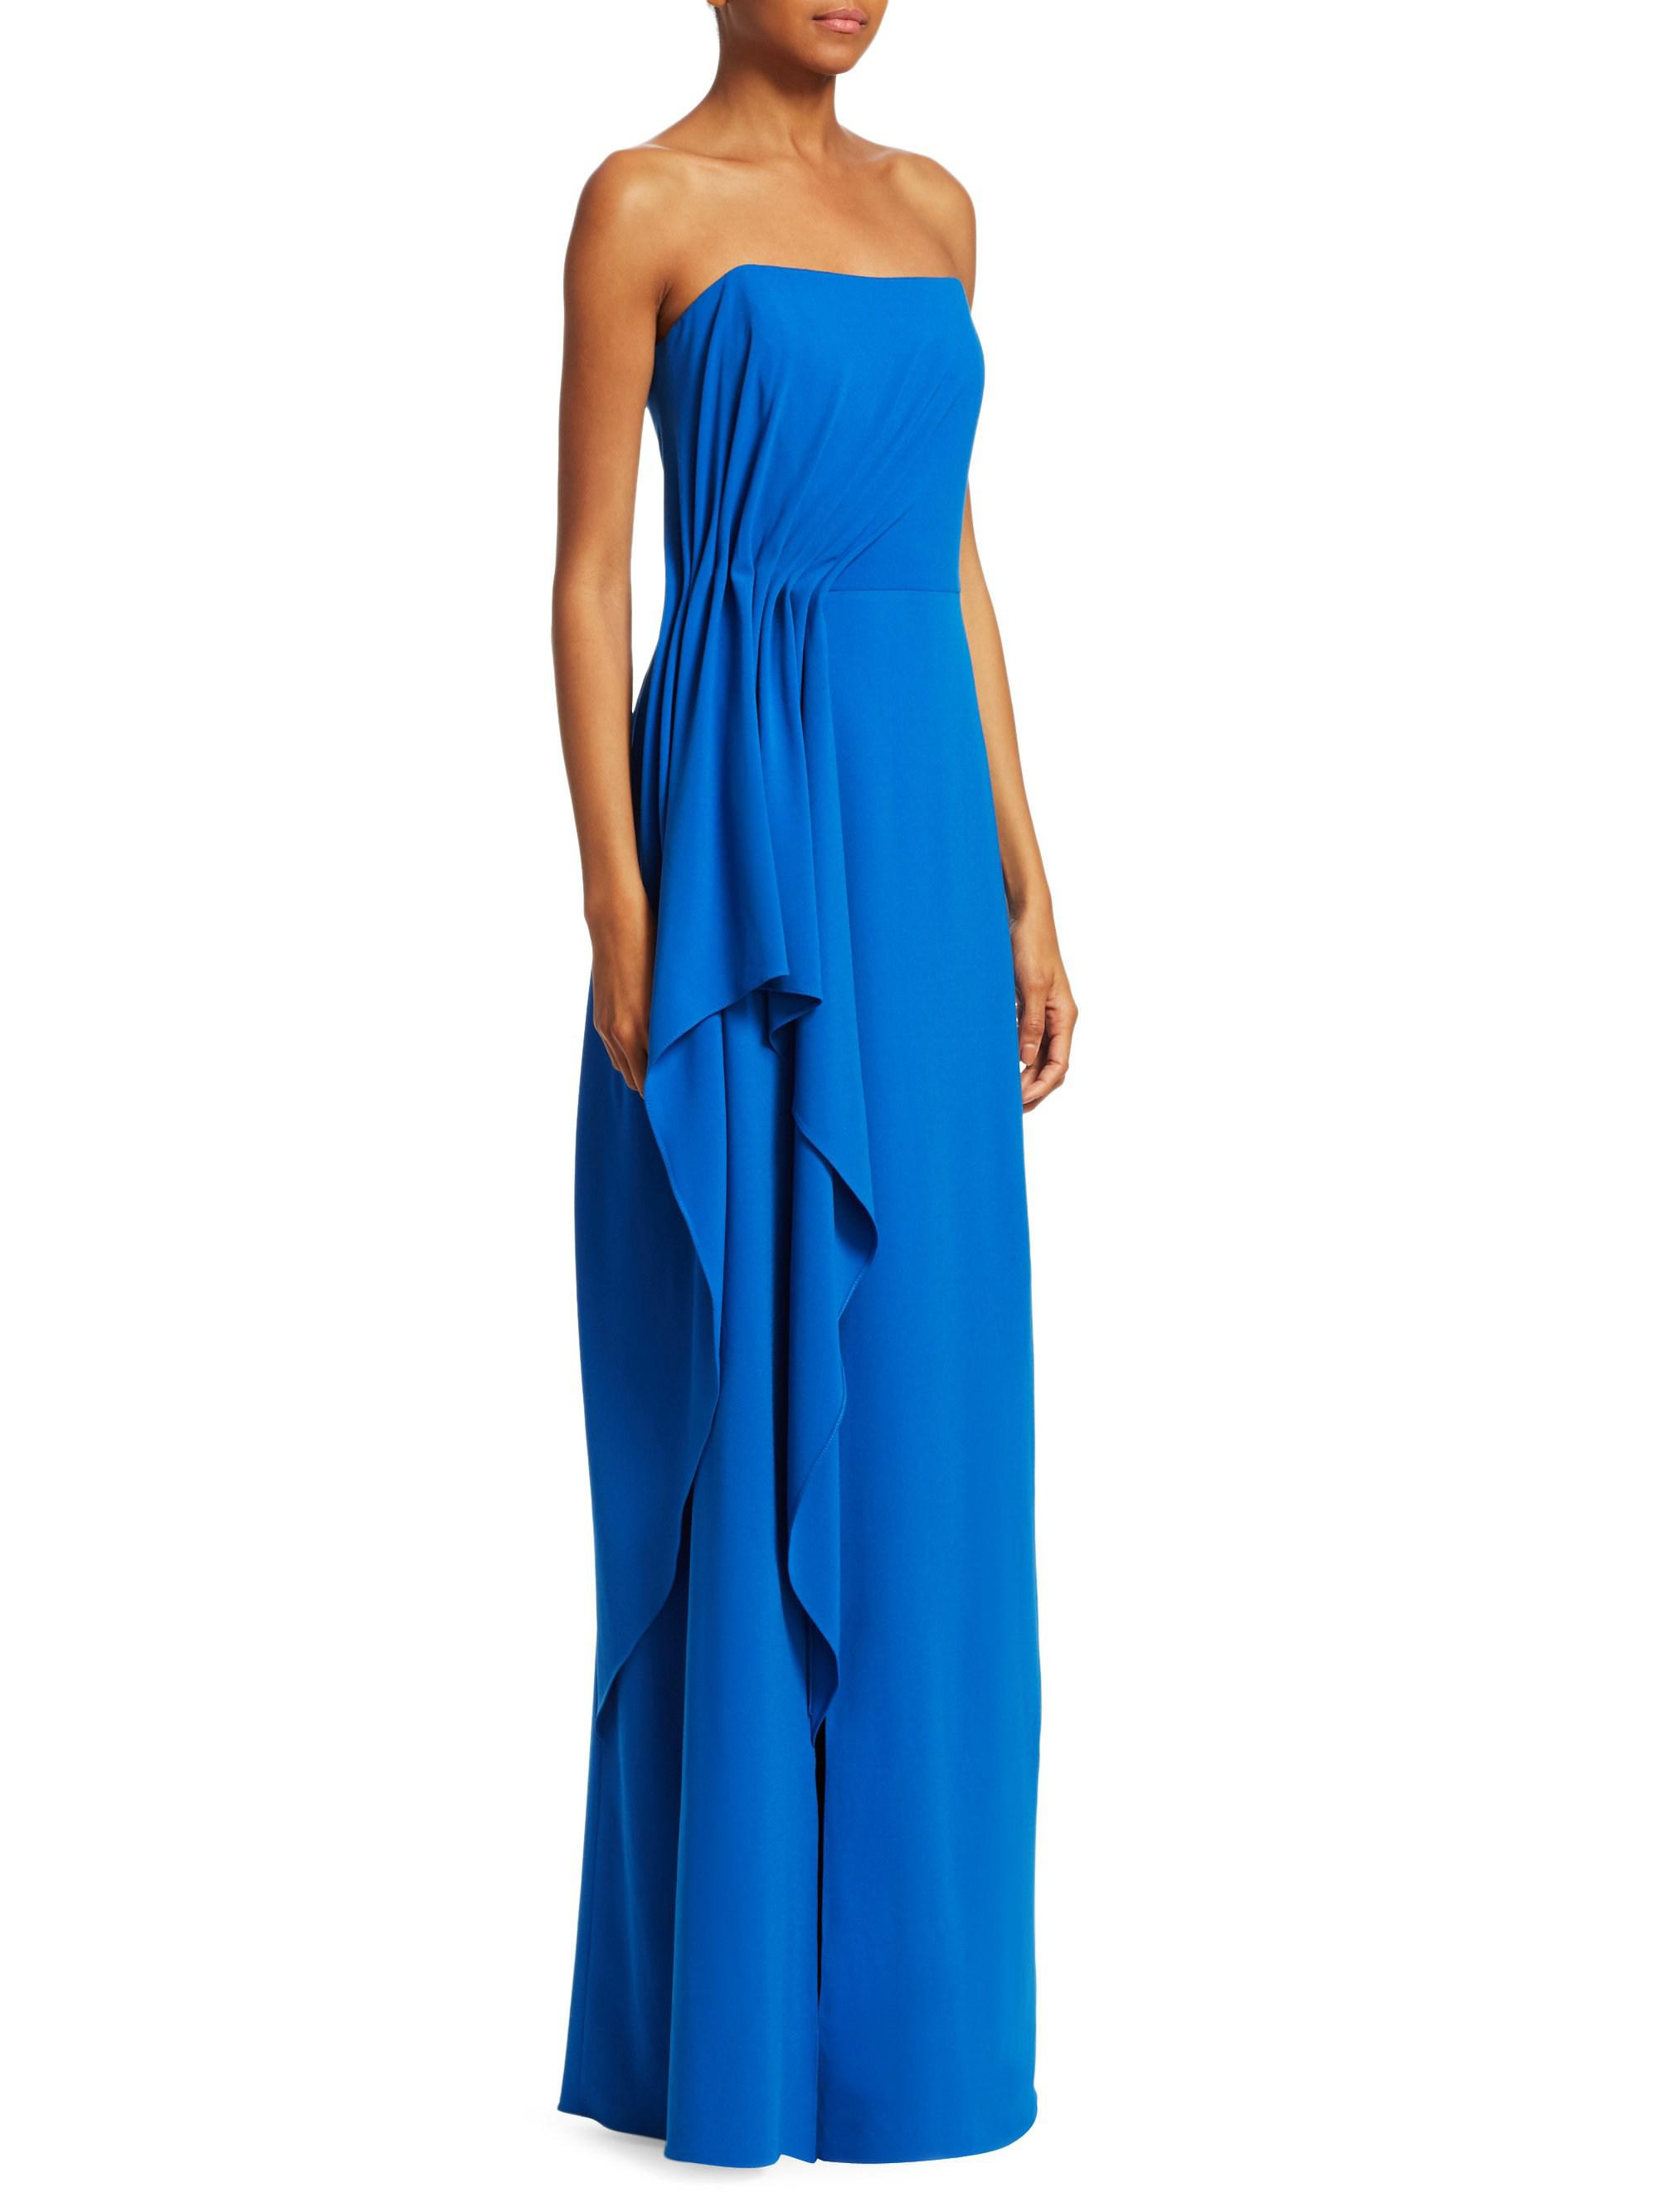 Lyst - Halston Heritage Ruched Evening Gown in Blue